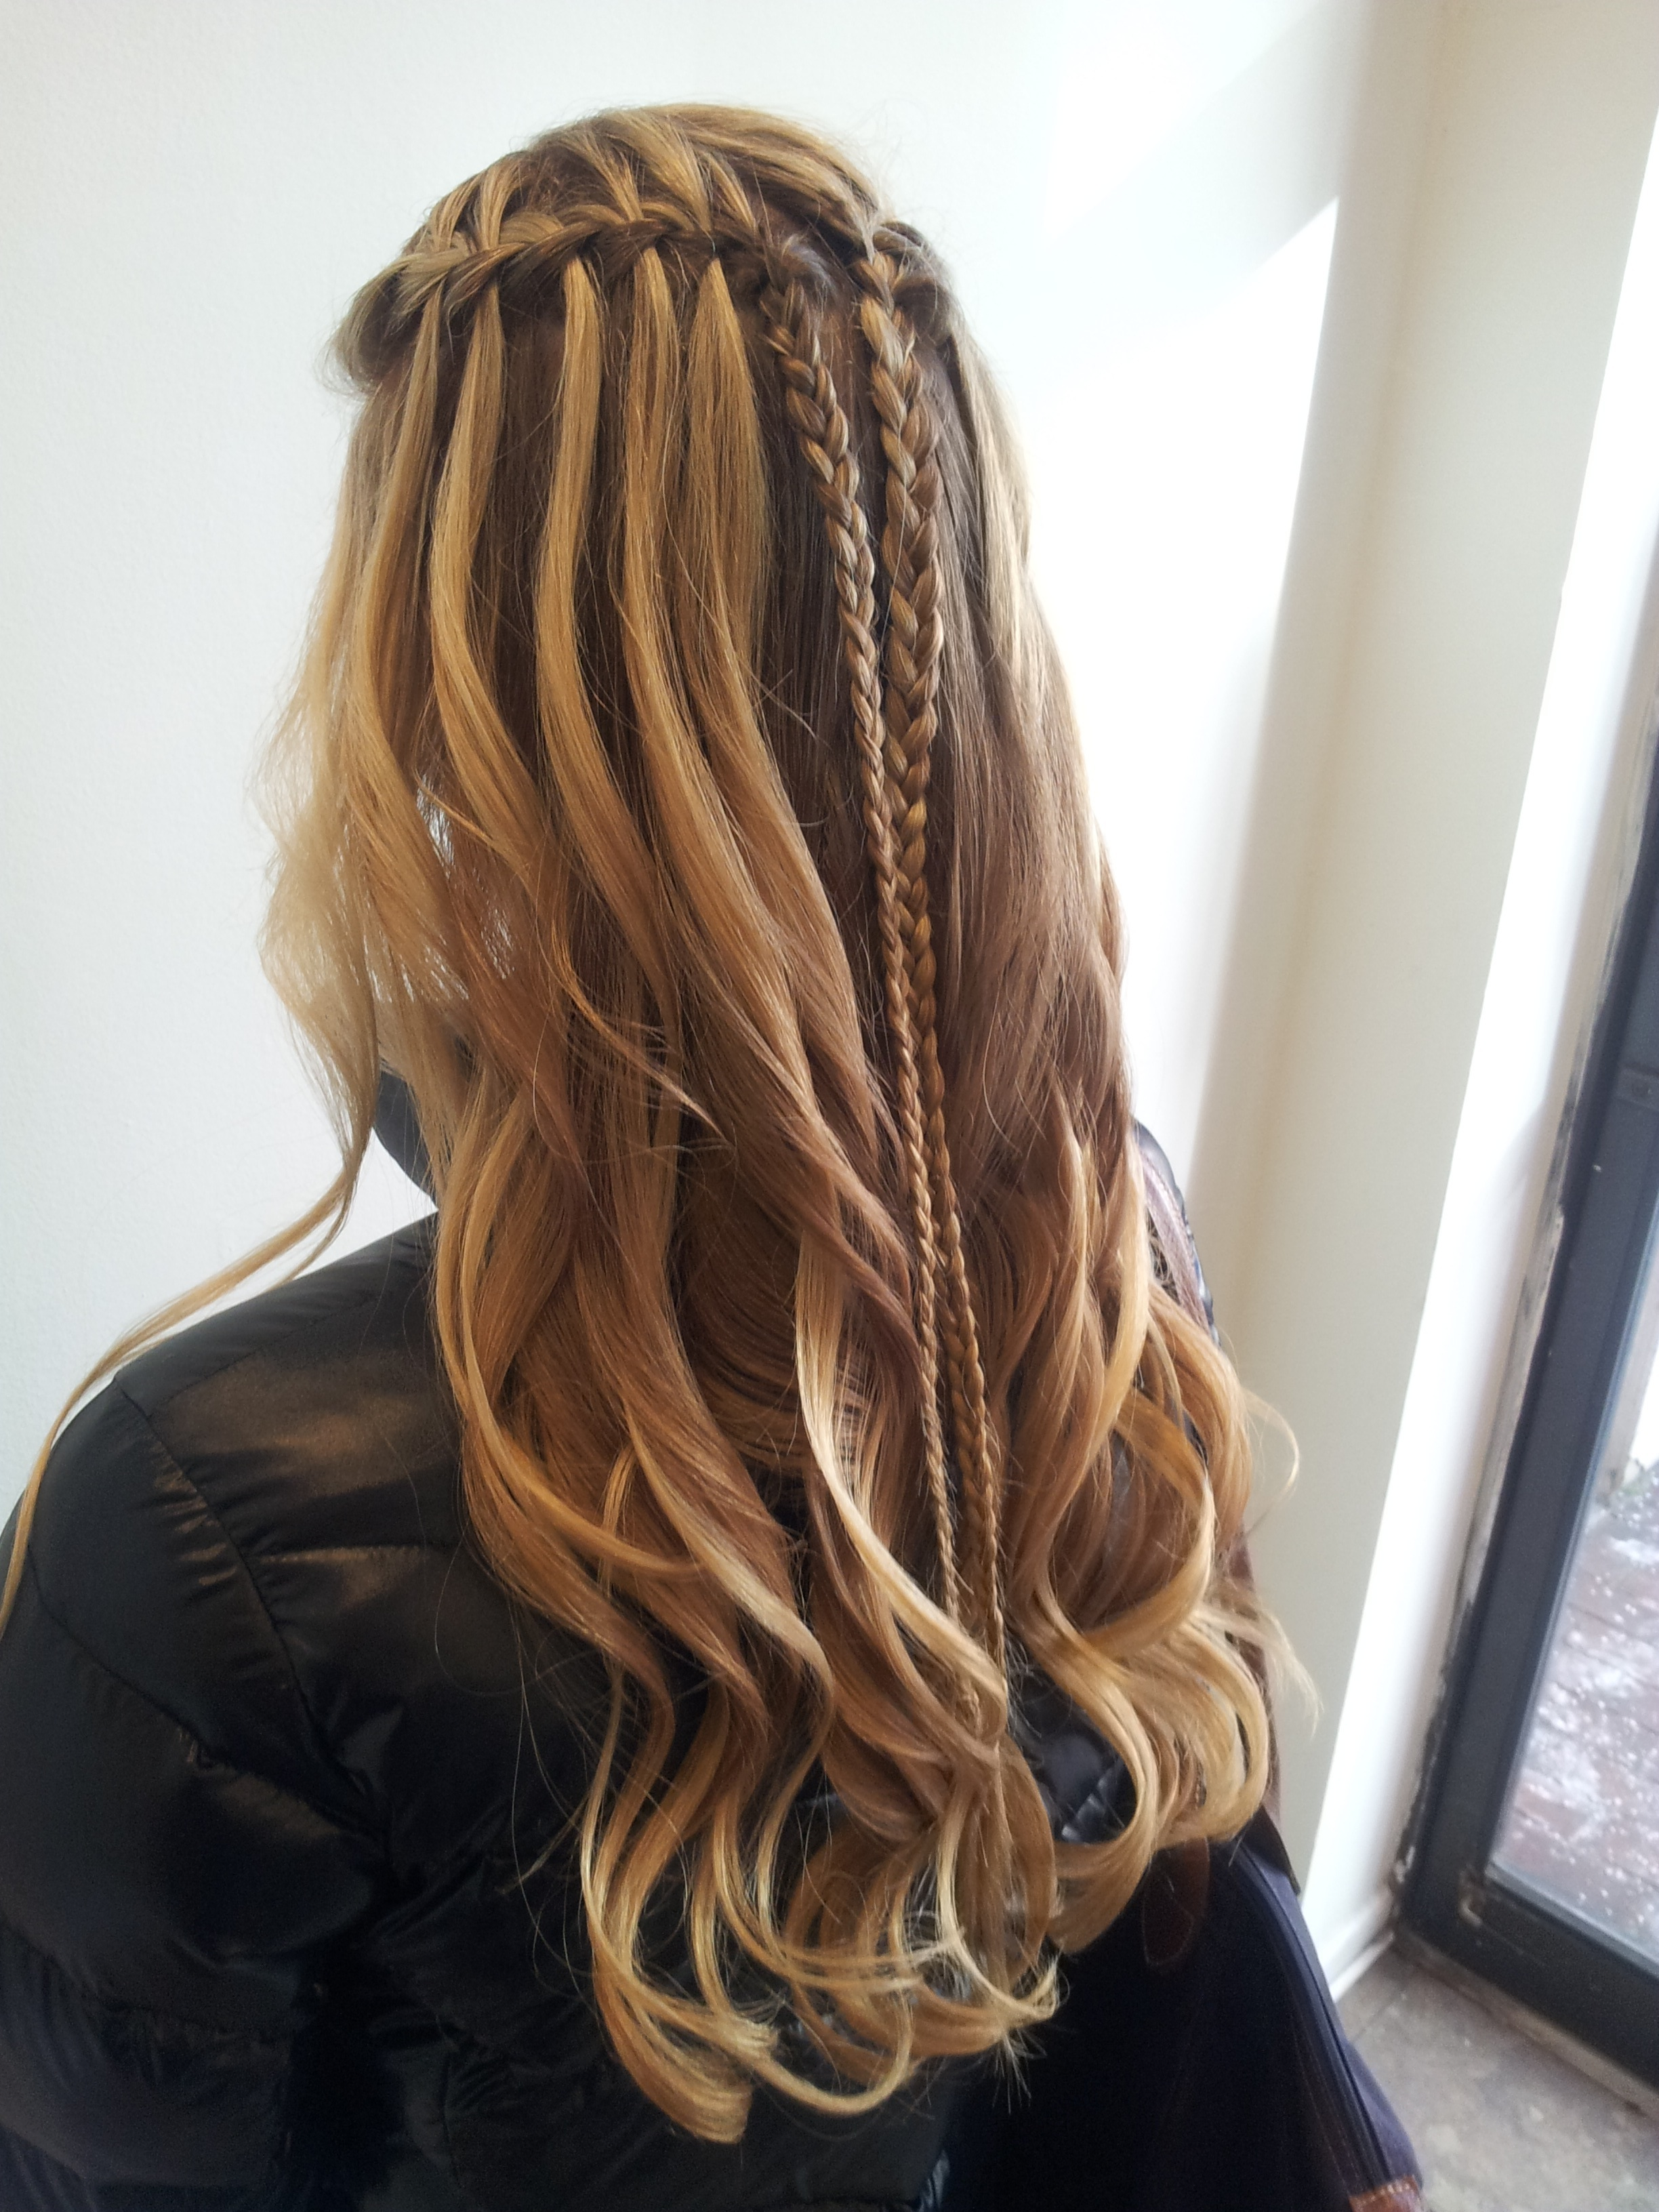 Looks We Love: Instead of a Blowout, the Braid Bar at Philadelphia's AMS Salon